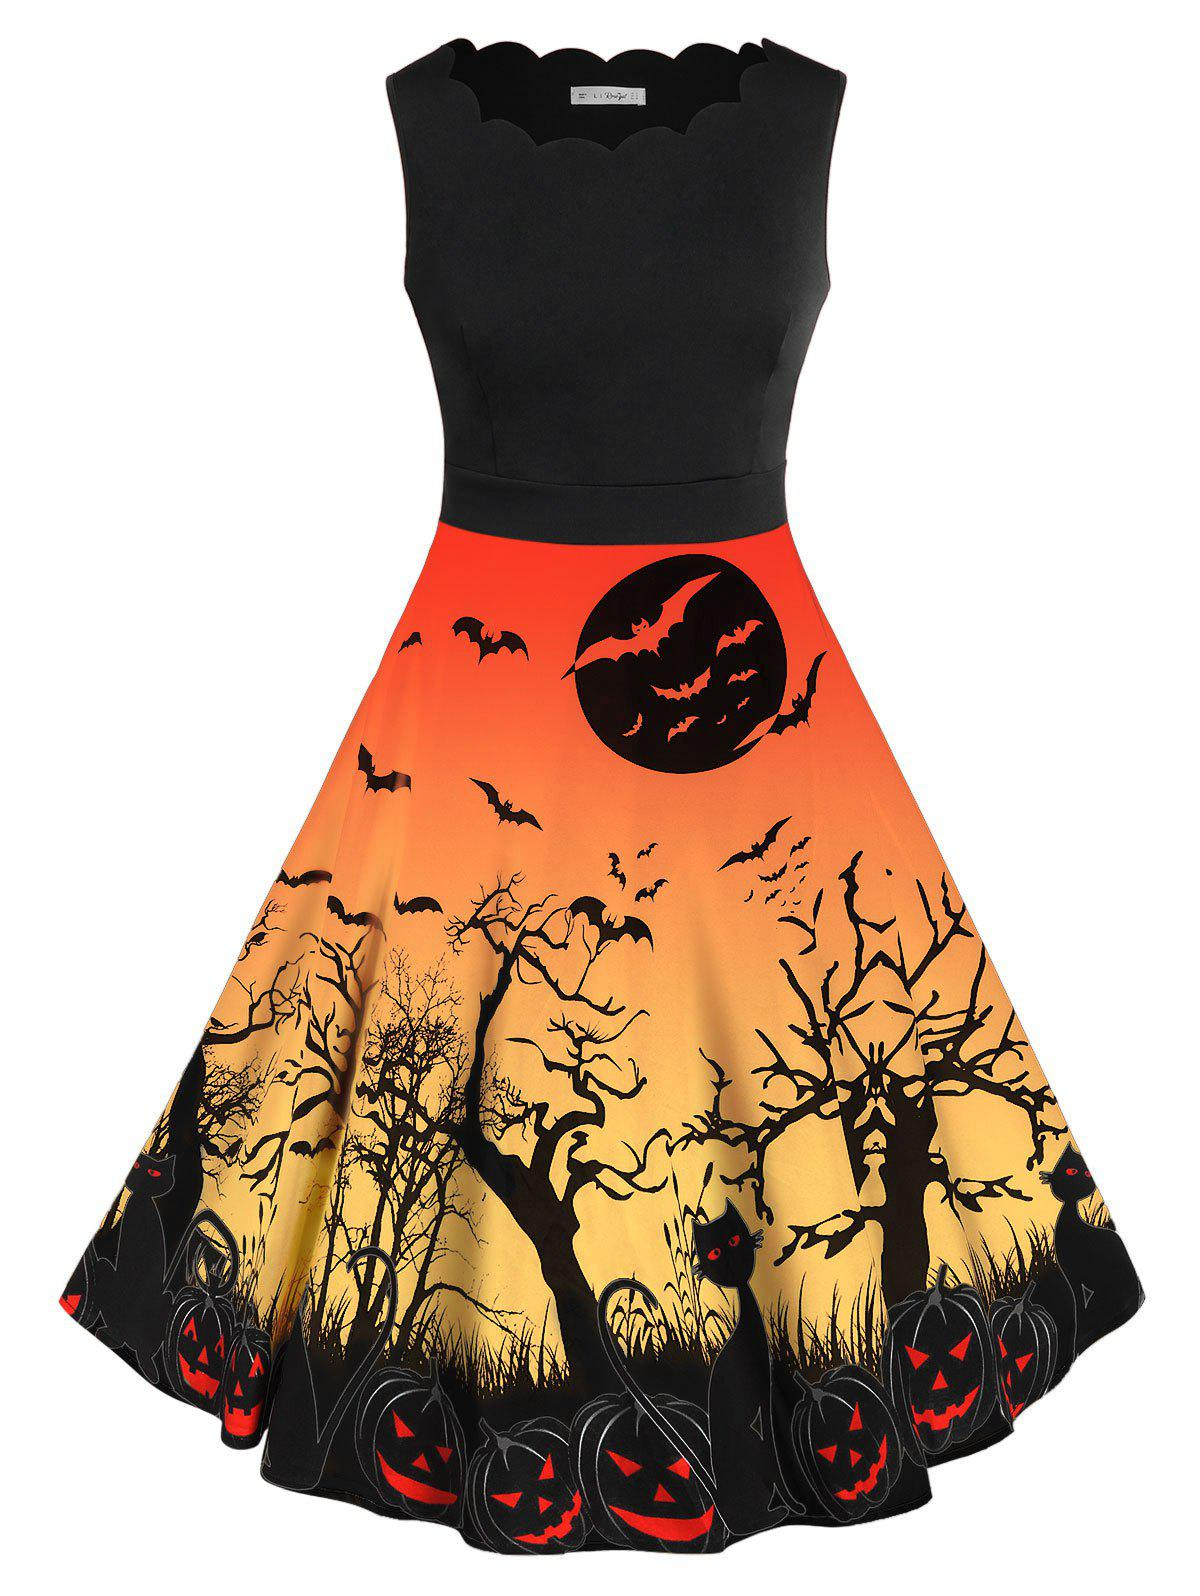 Plus Size Bat Pumpkin Print Halloween Vintage Dress